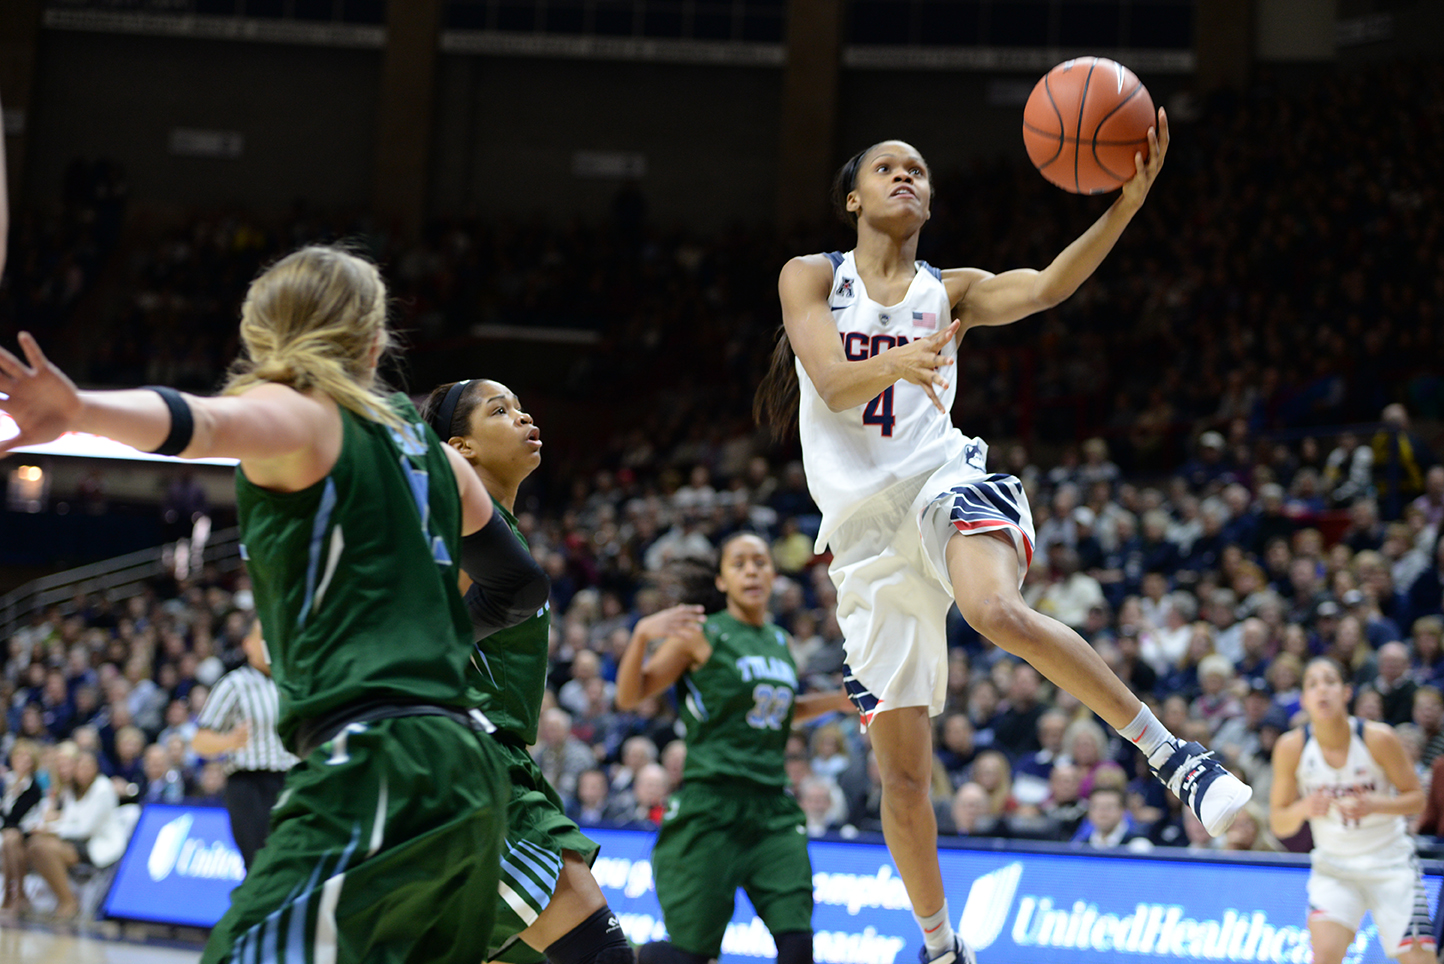 Guard Moriah Jefferson goes up for a layup during UConn's 80-40 victory over Tulane at Gampel Pavilion on Saturday Feb. 27, 2016. Jefferson, along with Breanna Stewart, Morgan Tuck, and Briana Pulido, was honored pregame during a Senior Day celebration. (Amar Batra/The Daily Campus)